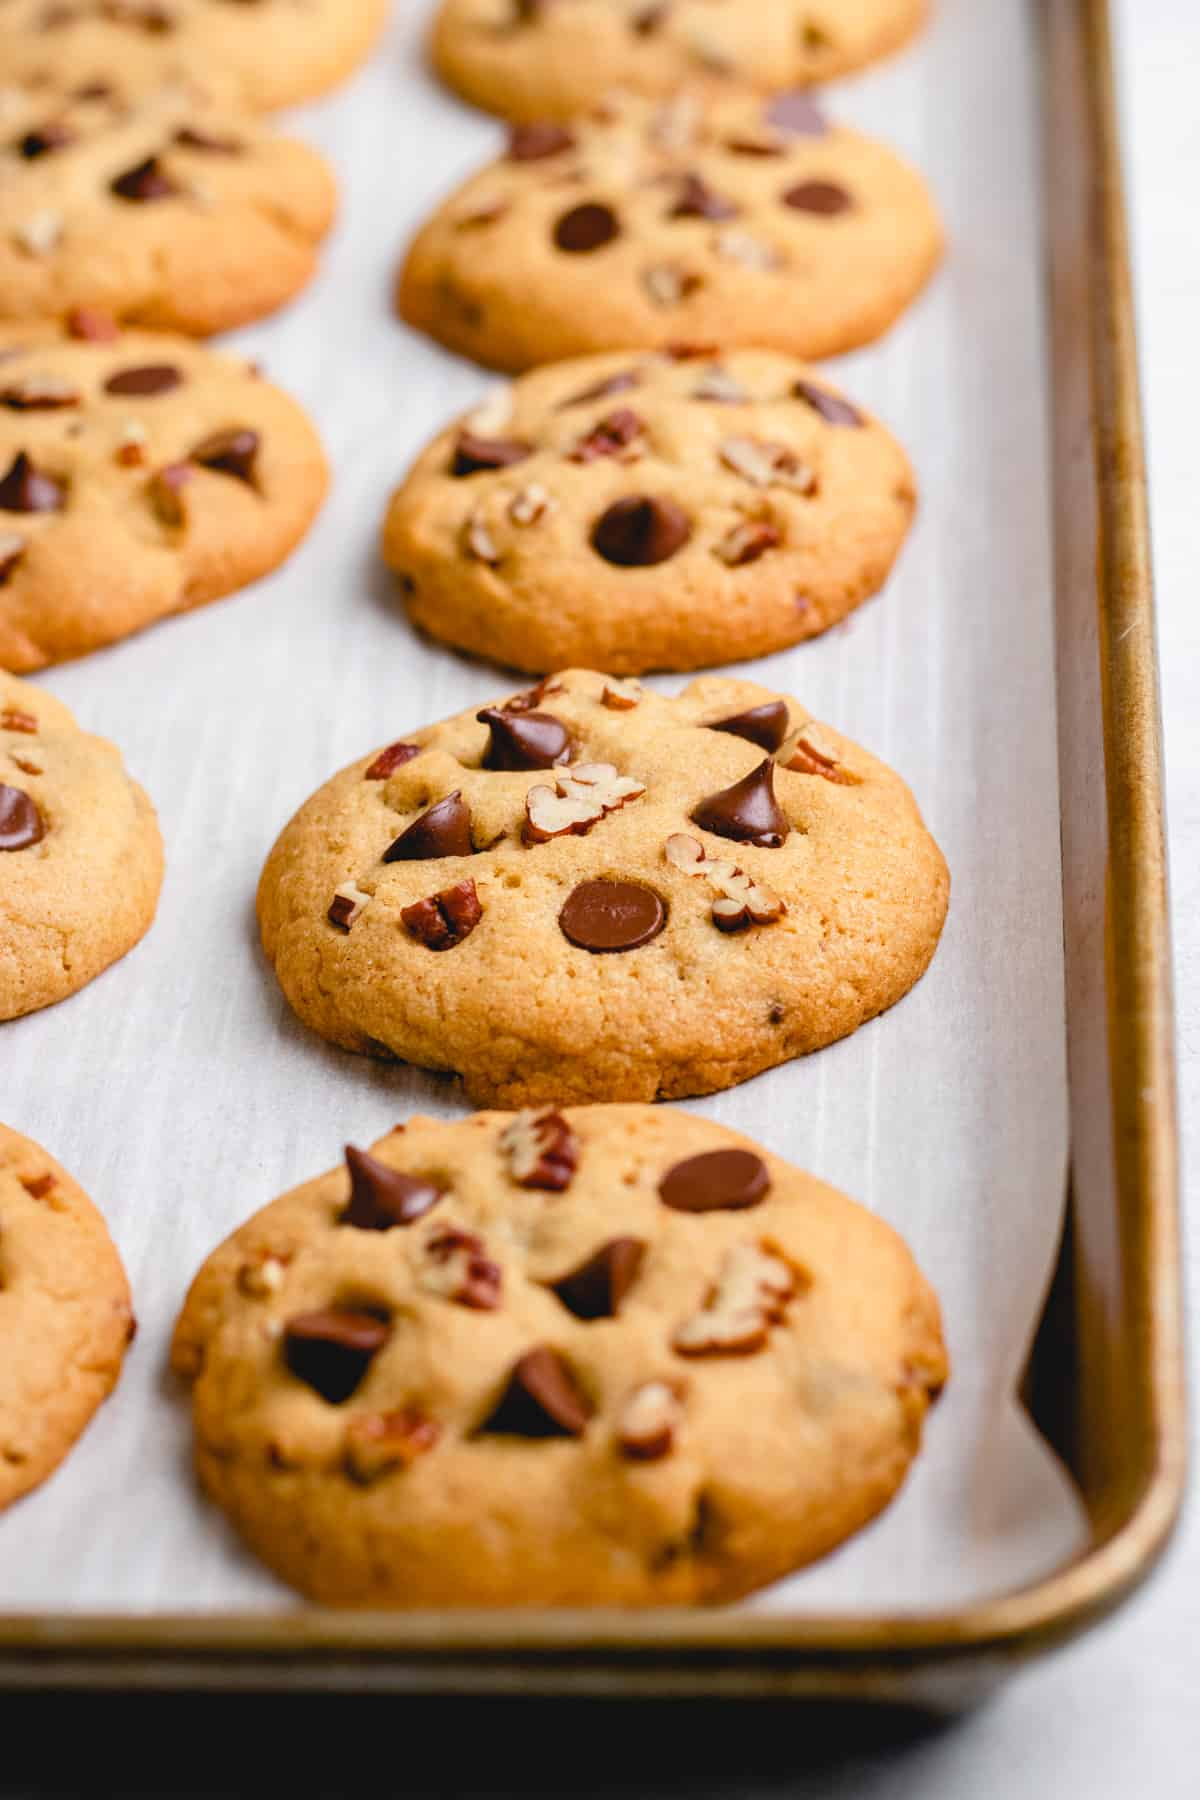 Pecan Chocolate Chip Cookies on a baking sheet with parchment paper.